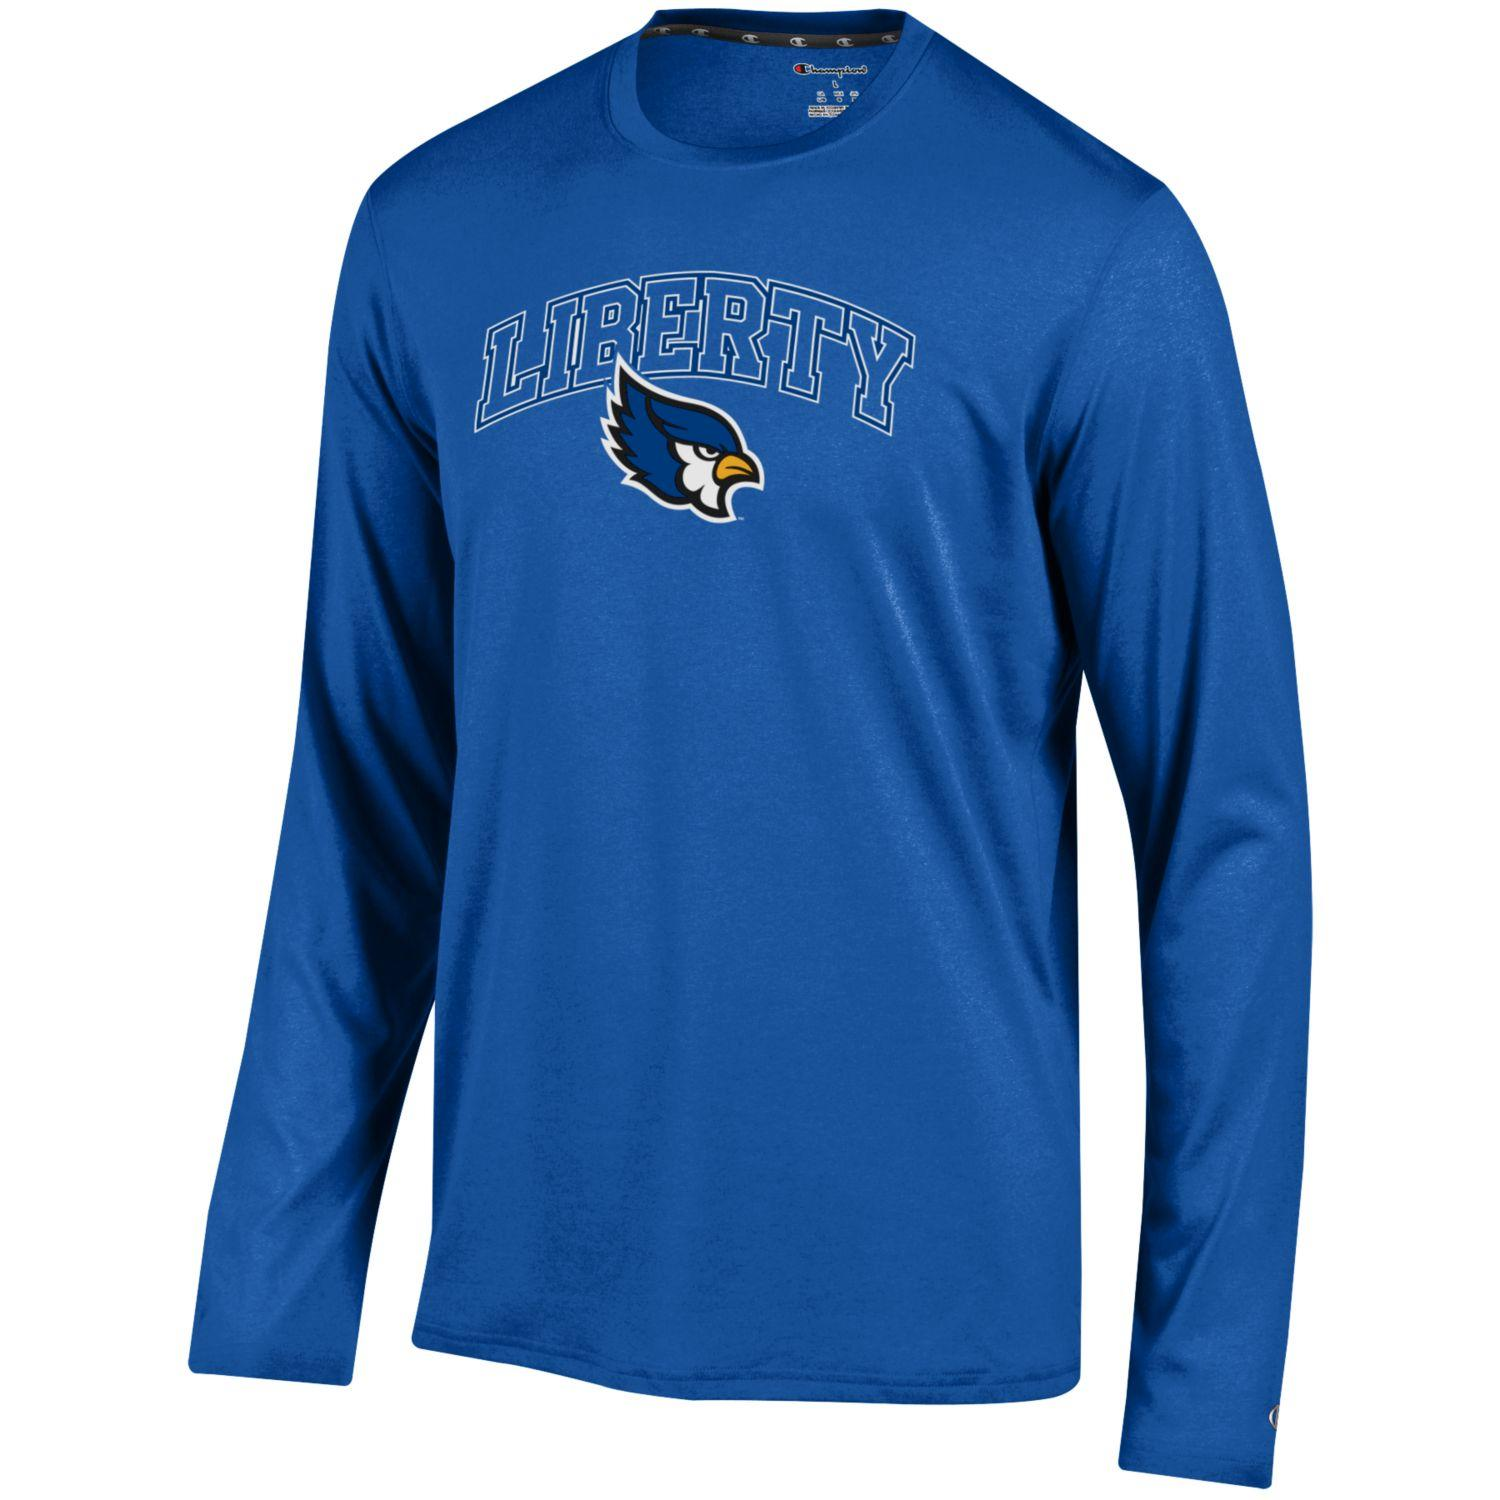 bfd1c644 Liberty Blue Jays Royal Blue Long Sleeve Epic Tee by Champion | MO Sports  Authentics, Apparel & Gifts